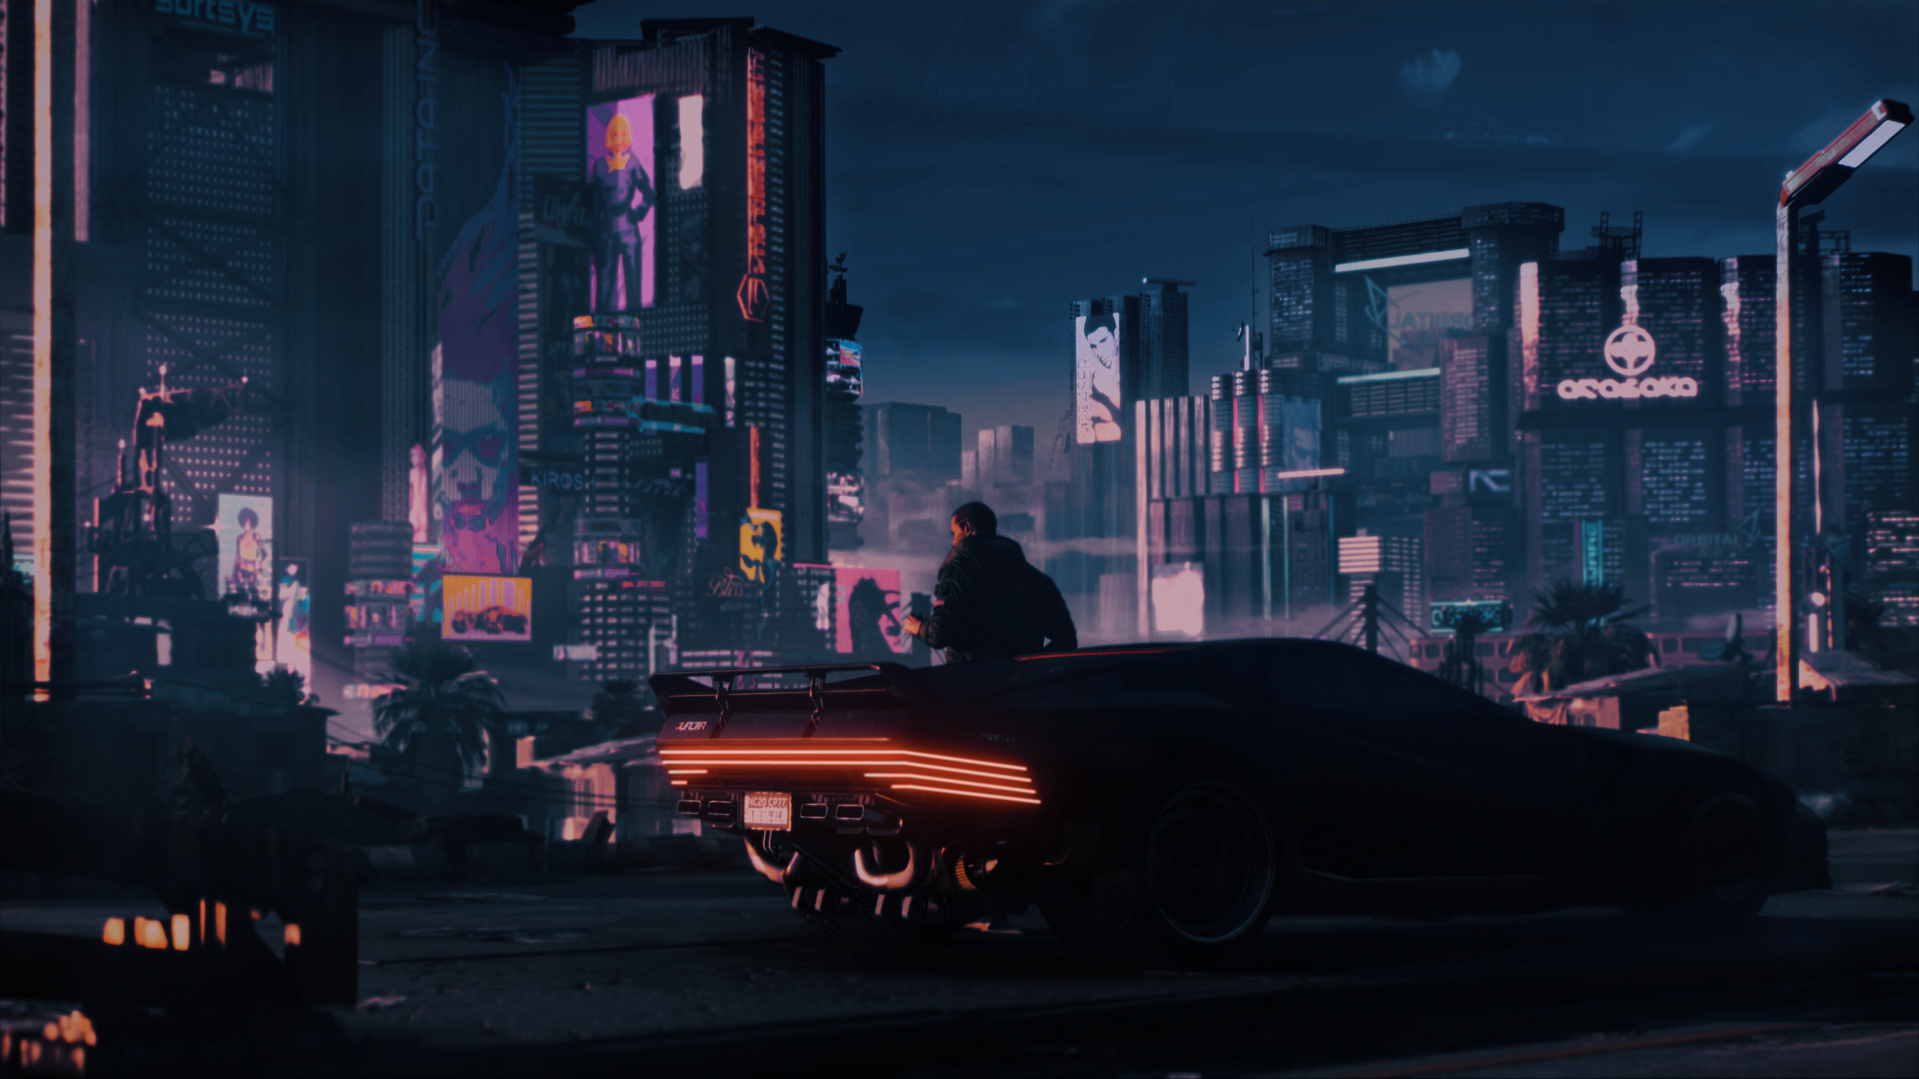 Free Download Cyberpunk 2077 4k Wallpaper Images (With